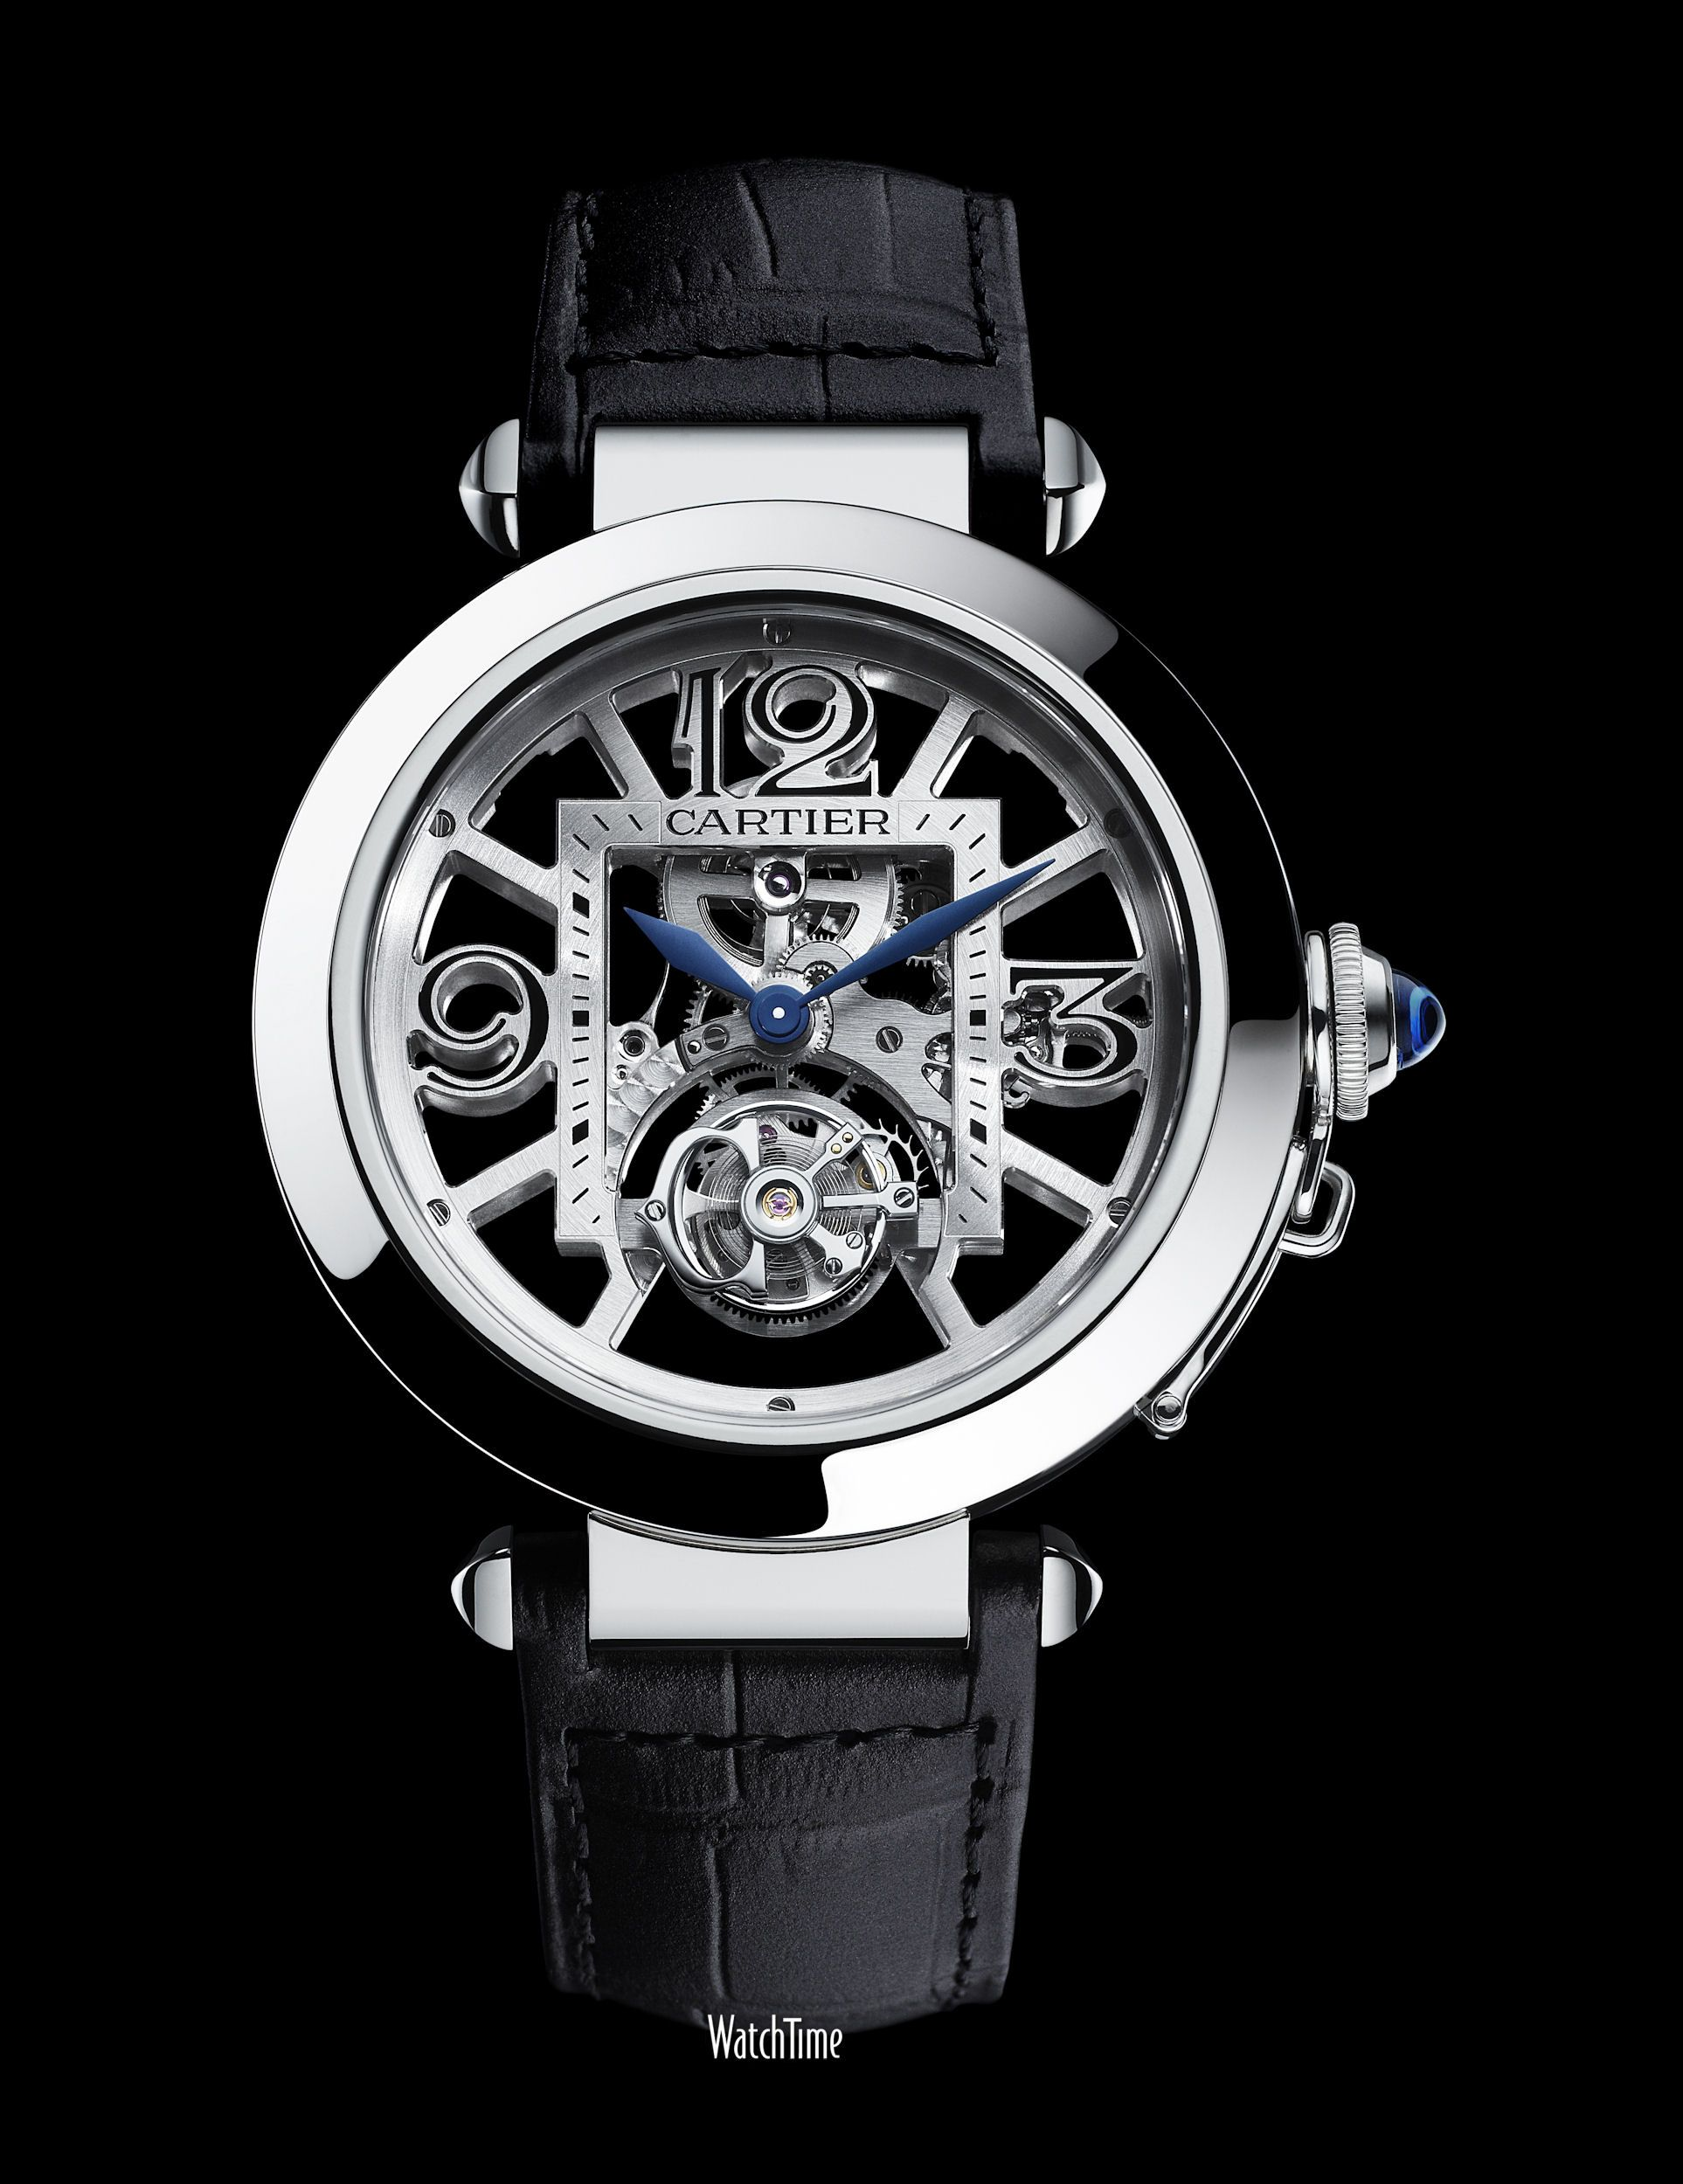 braveheart grandes complications flying timepiece fleurier bovet watches